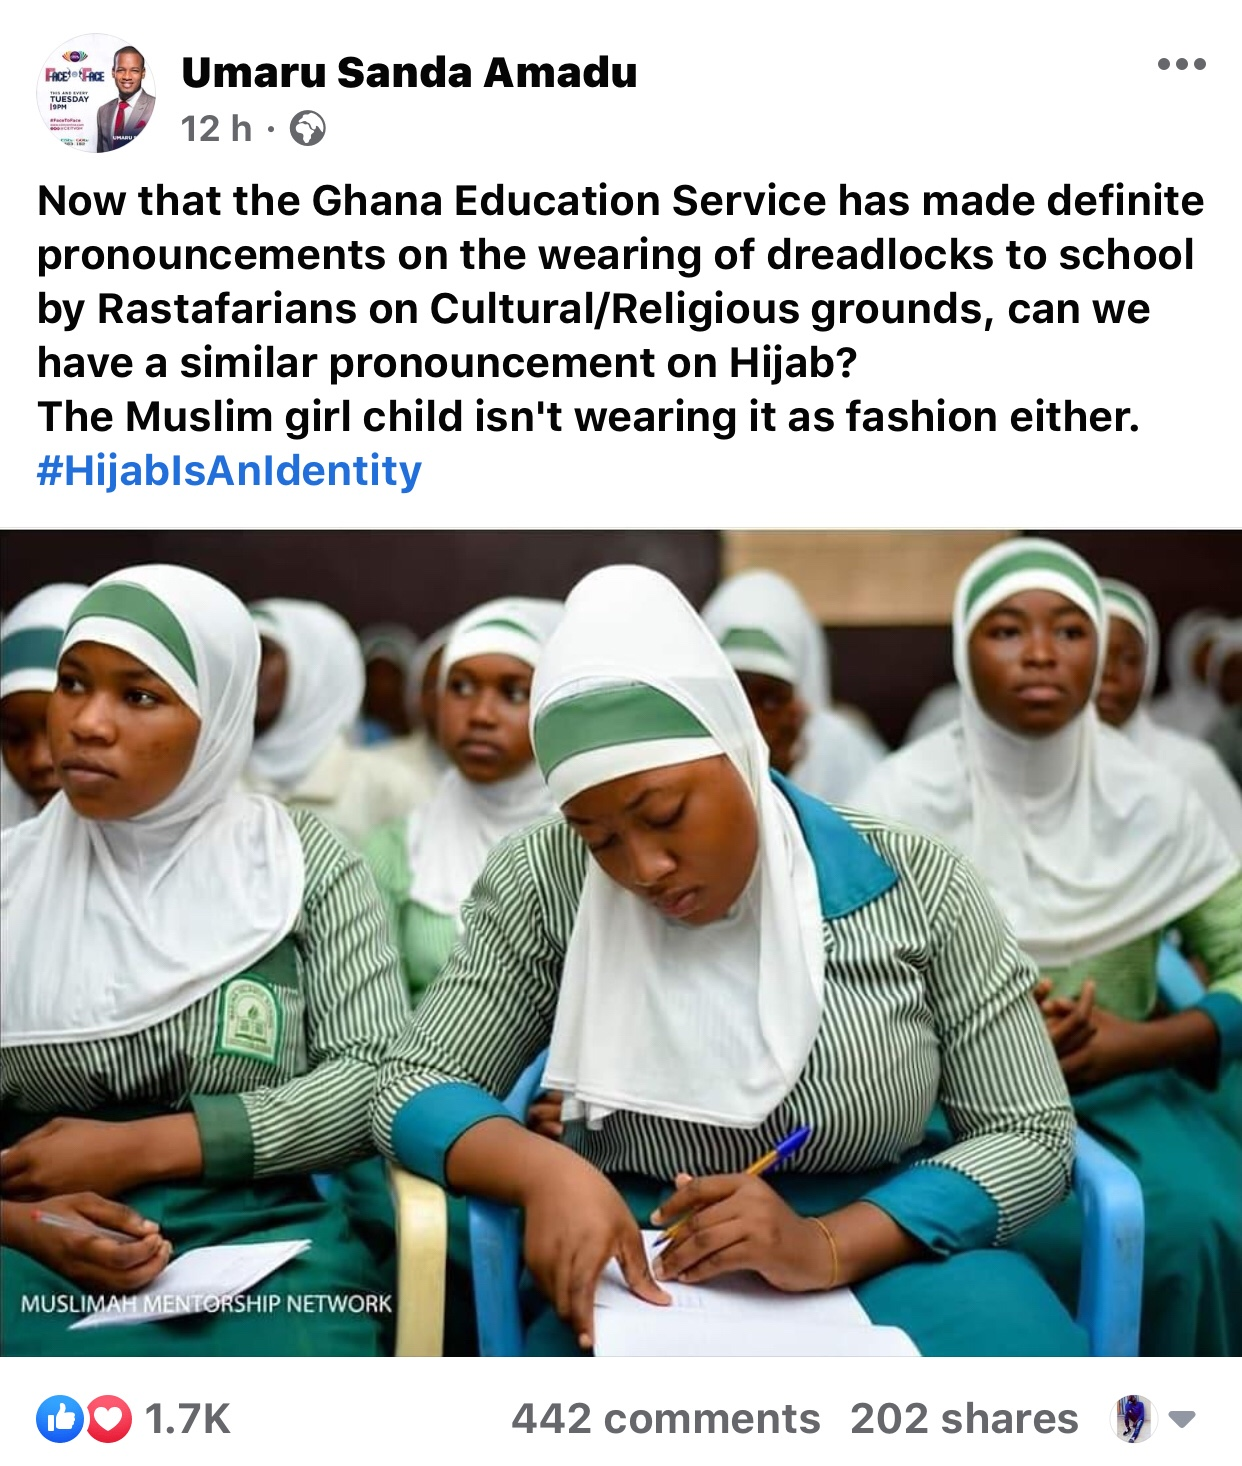 img 5676 - Read Full Details: What Umaru Sanda Tells GES To Do To Muslim Girls Wearing Hijab In Schools After Refusing To Admit The Two Rastafarians